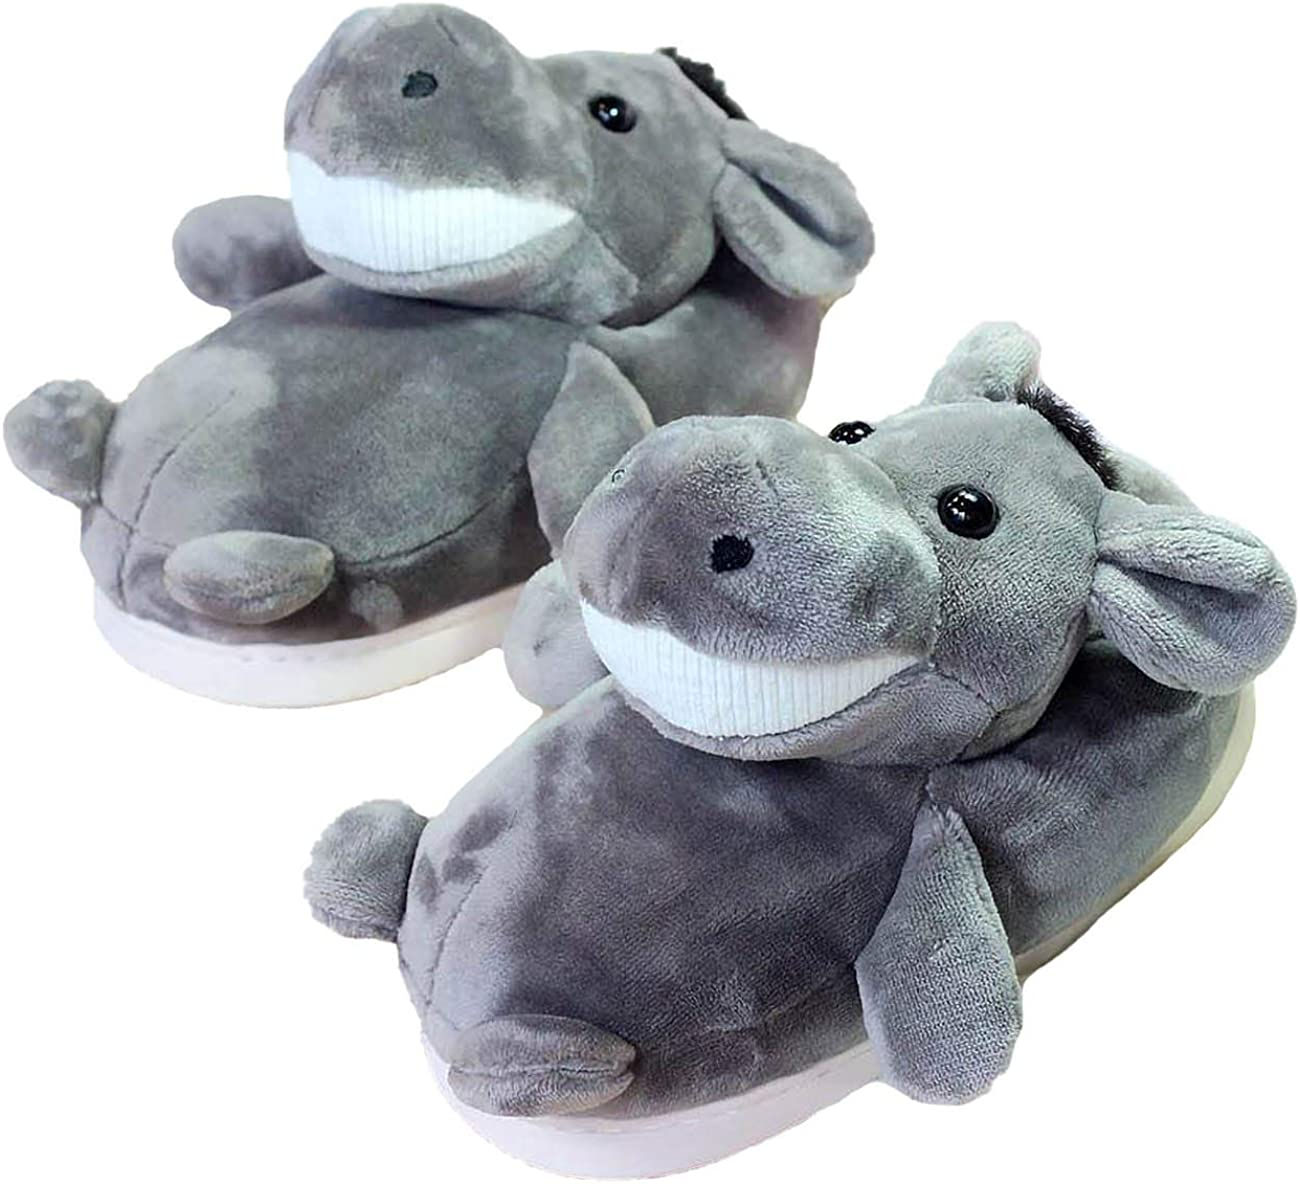 Adult Unisex Winter Warm Plush Animal Slippers,Soft Cozy Animal Styling Design Short Flannel Home Shoes,Animal Shaped Plush Booties,Carpet Slippers,Non-Slip Bedroom Shoes